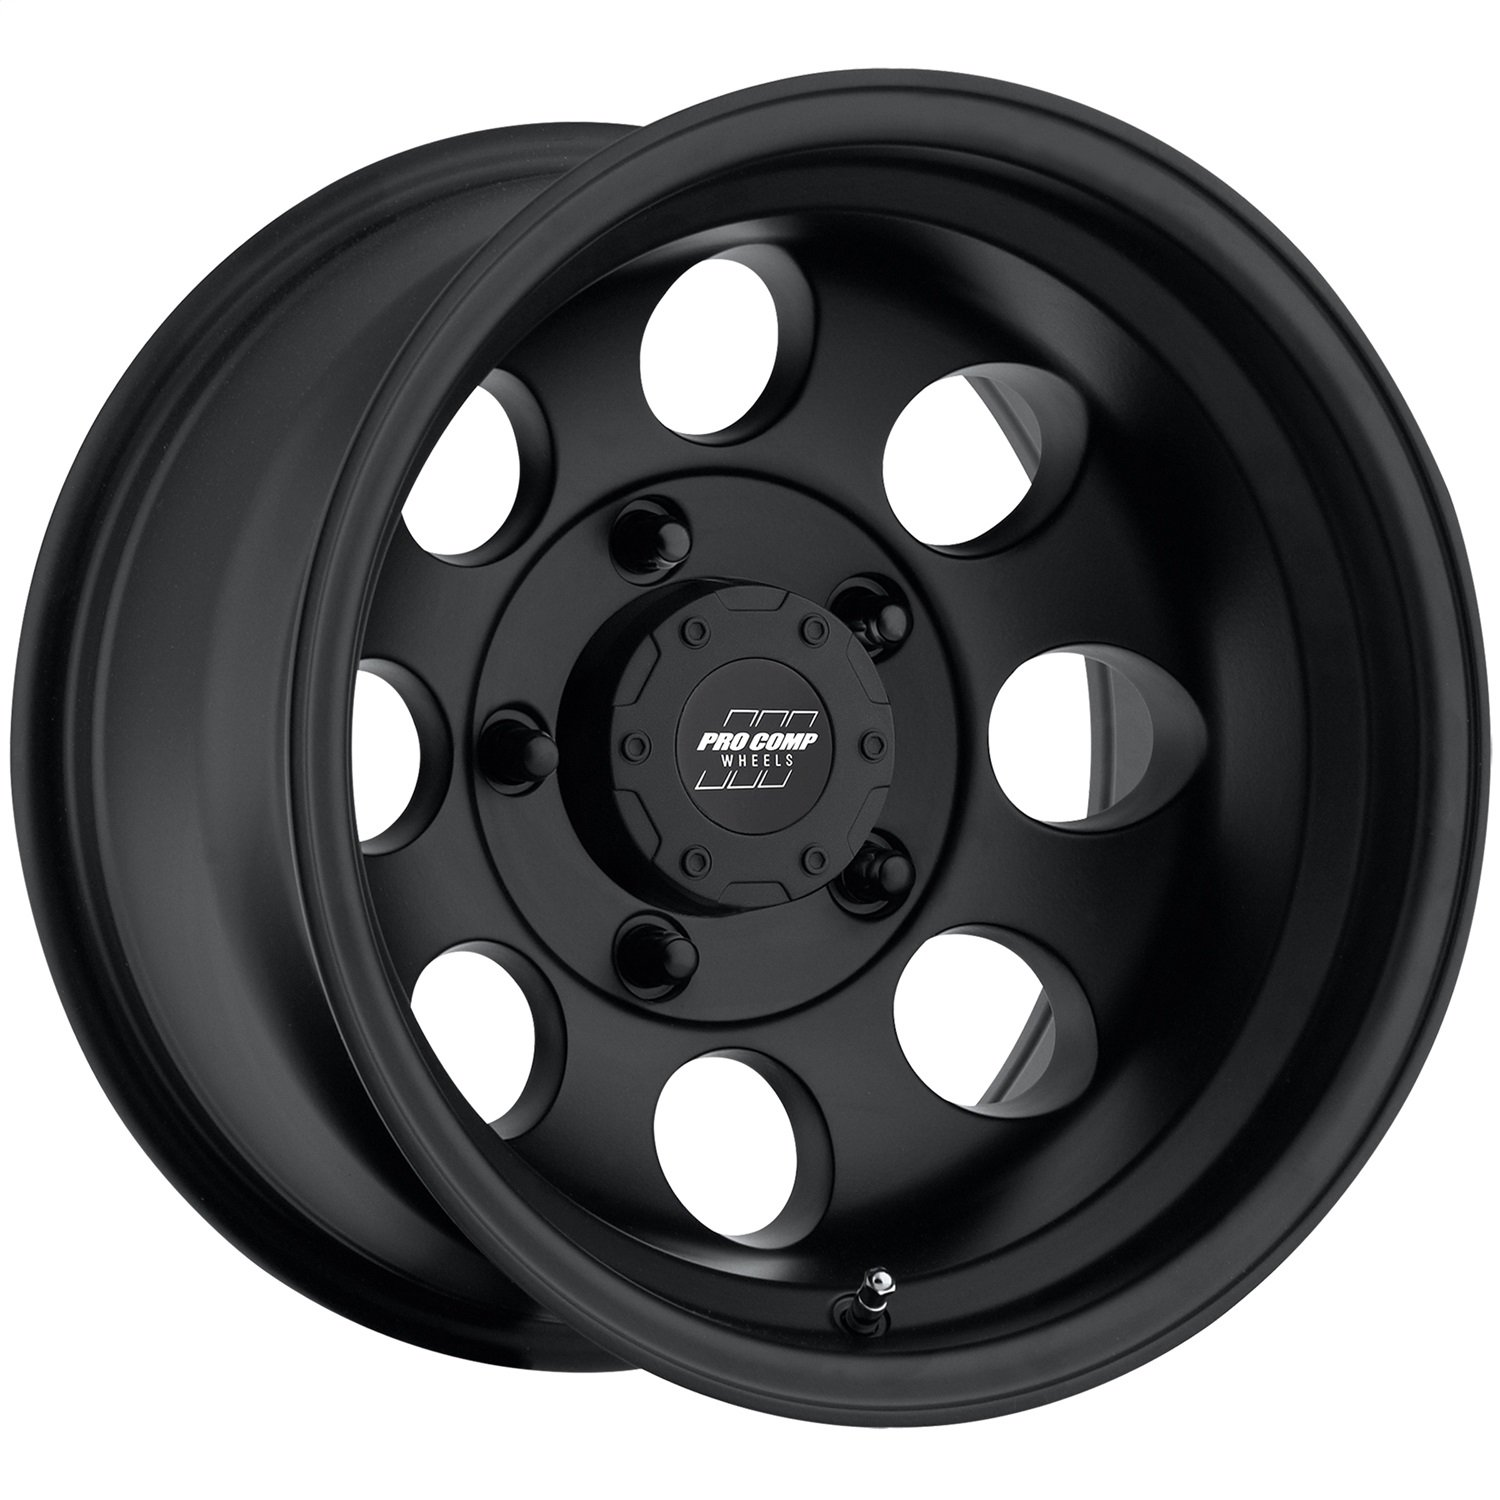 Pro Comp 70695165 Flat Black Wheel with Painted Finish (15x10''/5x114.3mm)